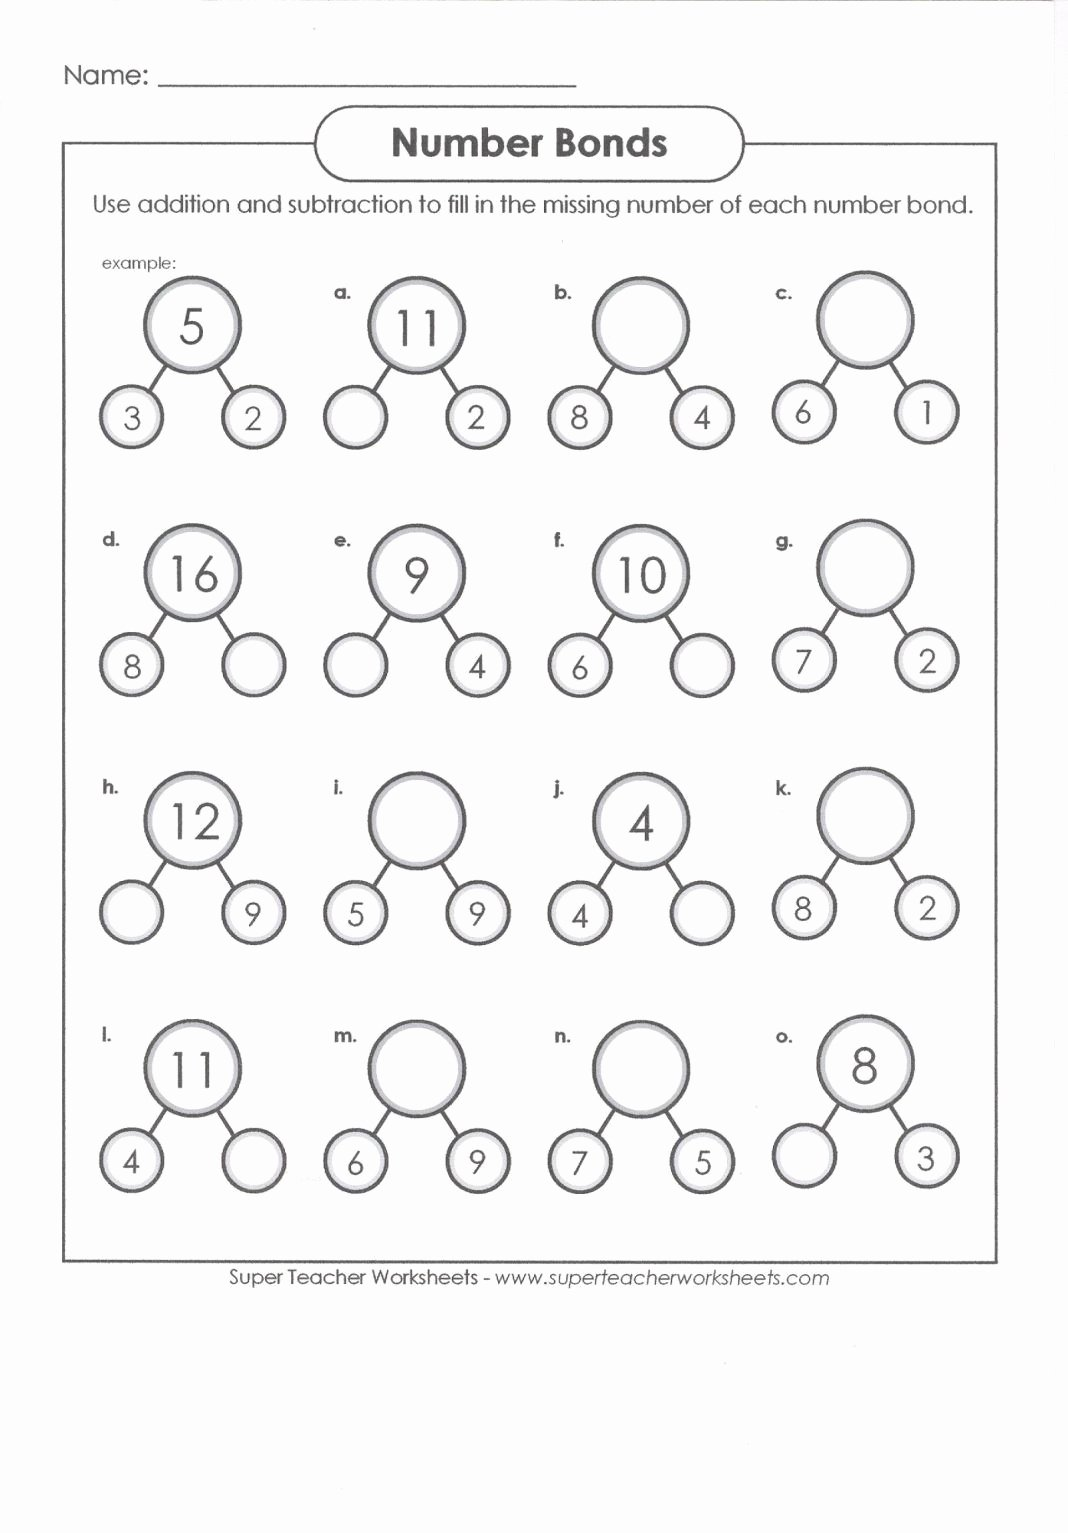 Number Bonds Worksheets 1st Grade Printable Pin On Hugo